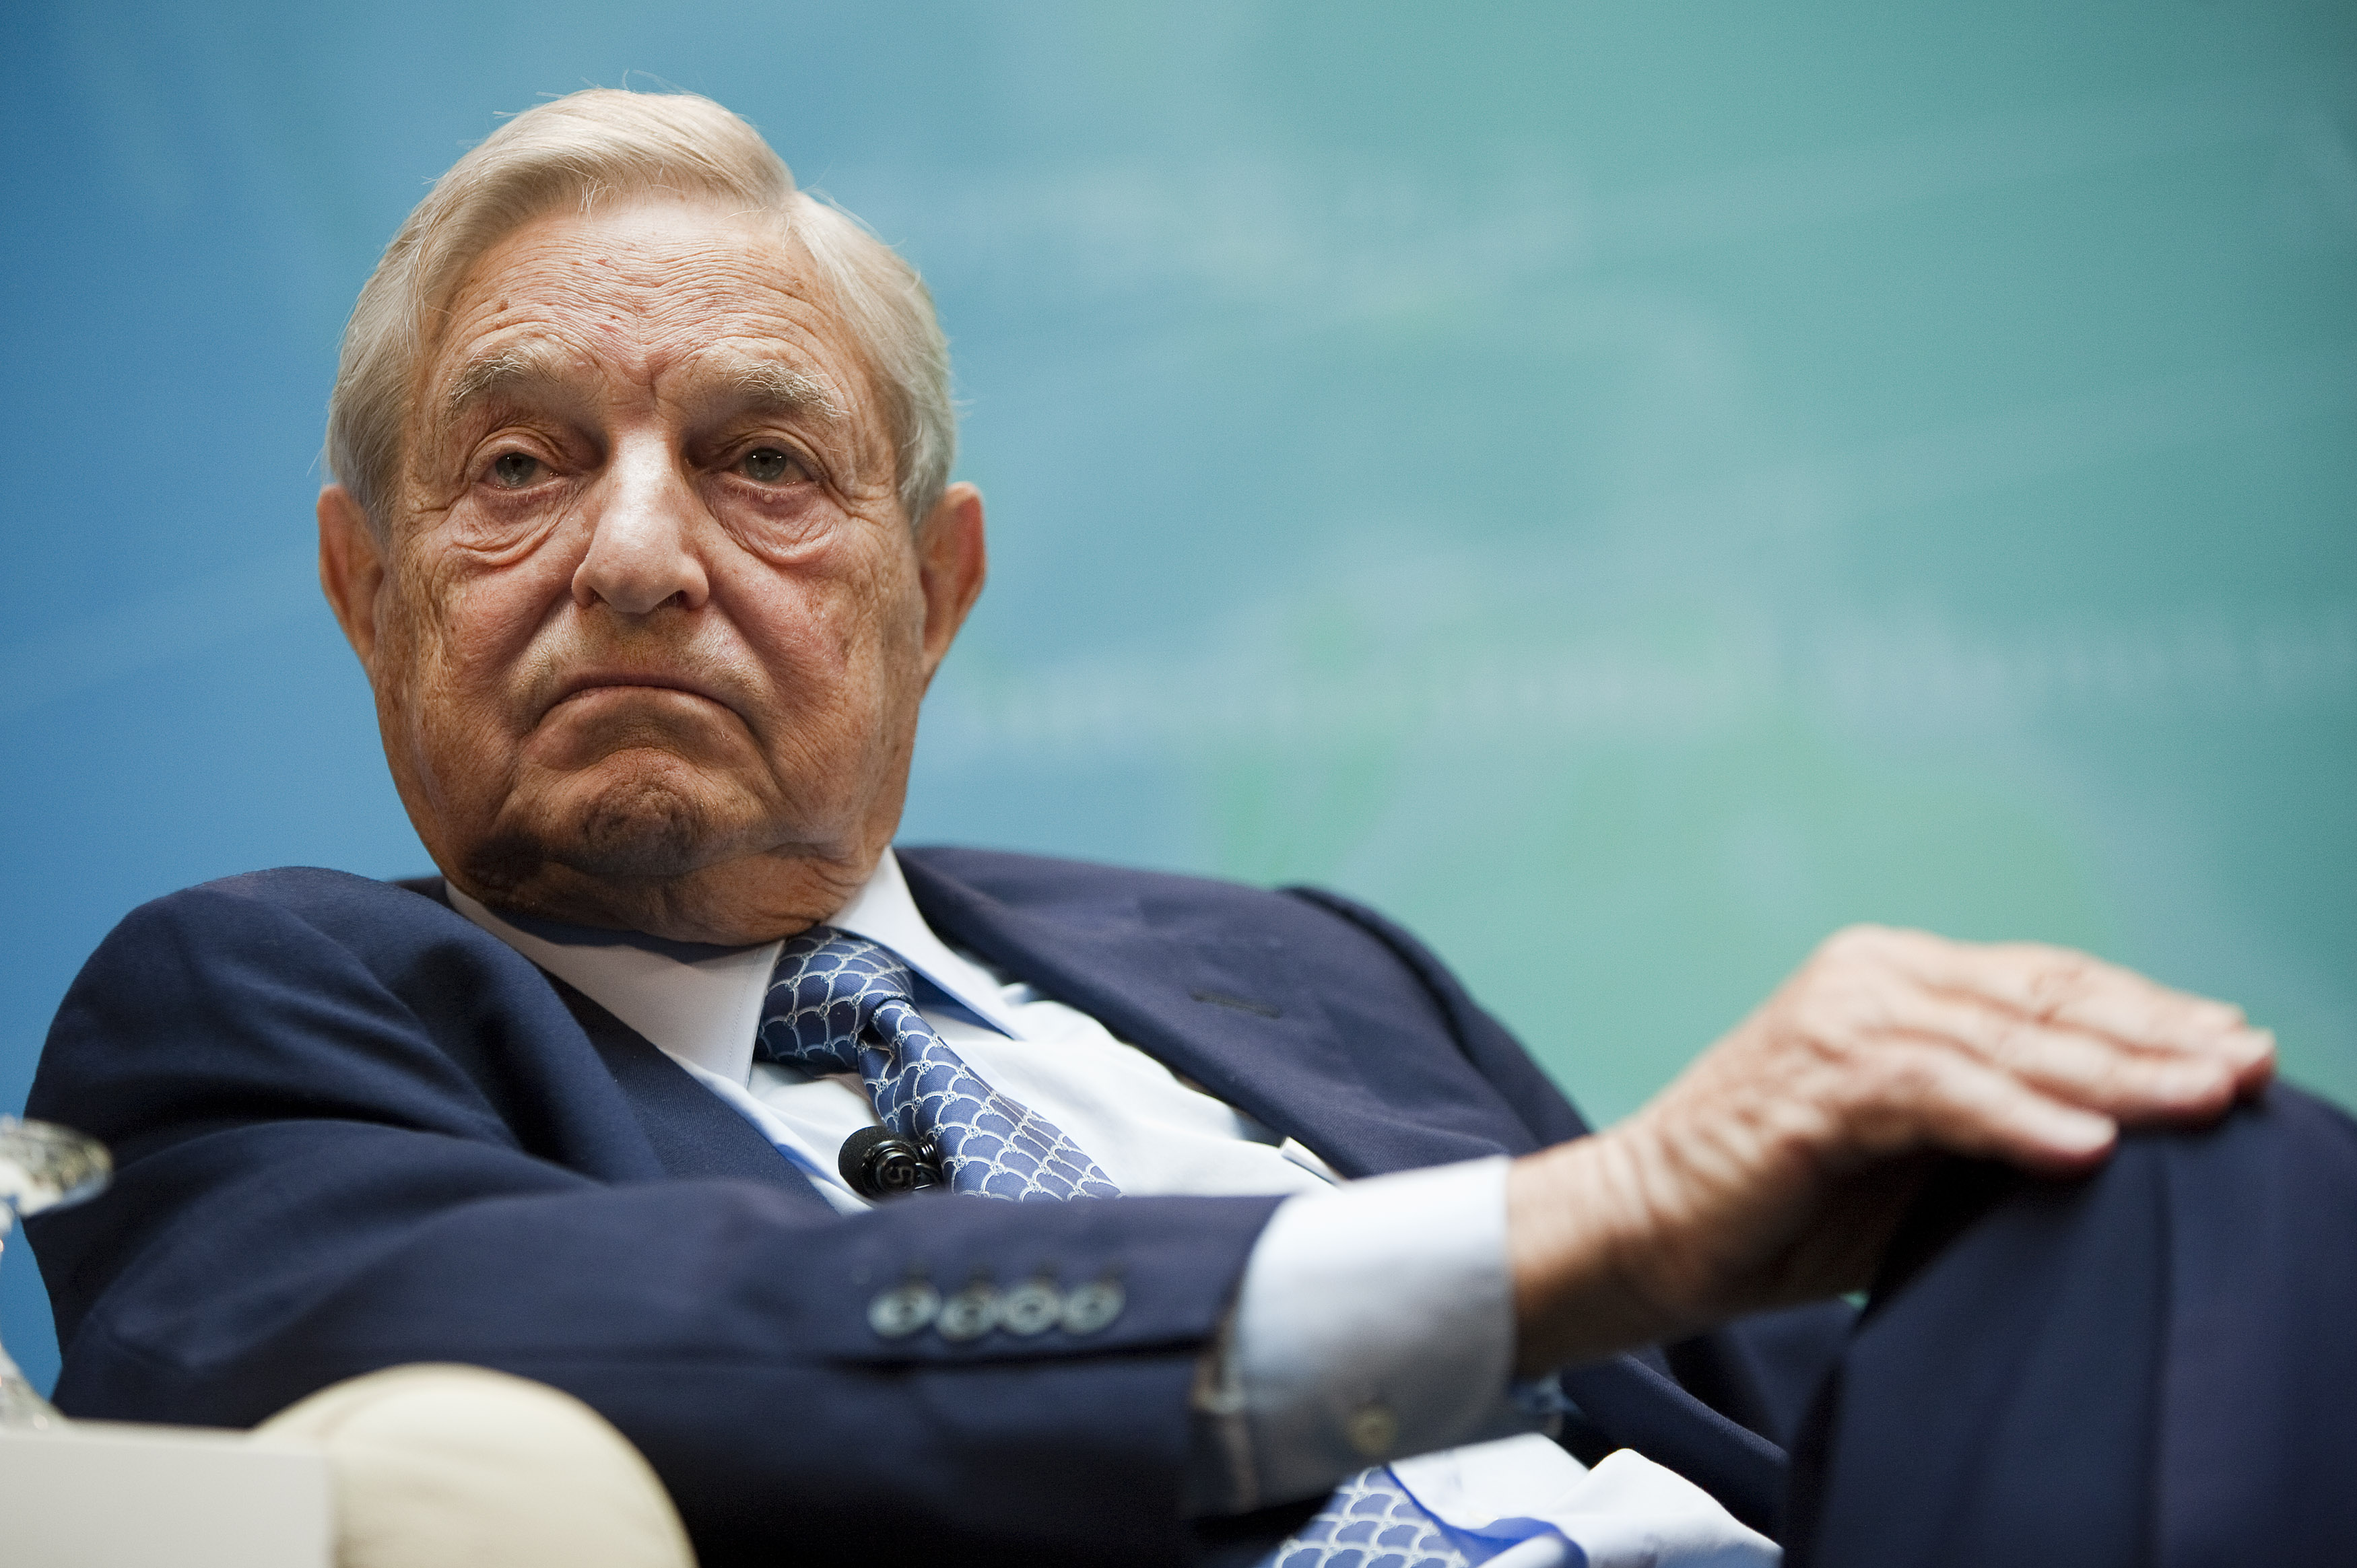 George Soros earned a  million dollar salary - leaving the net worth at 28000 million in 2017